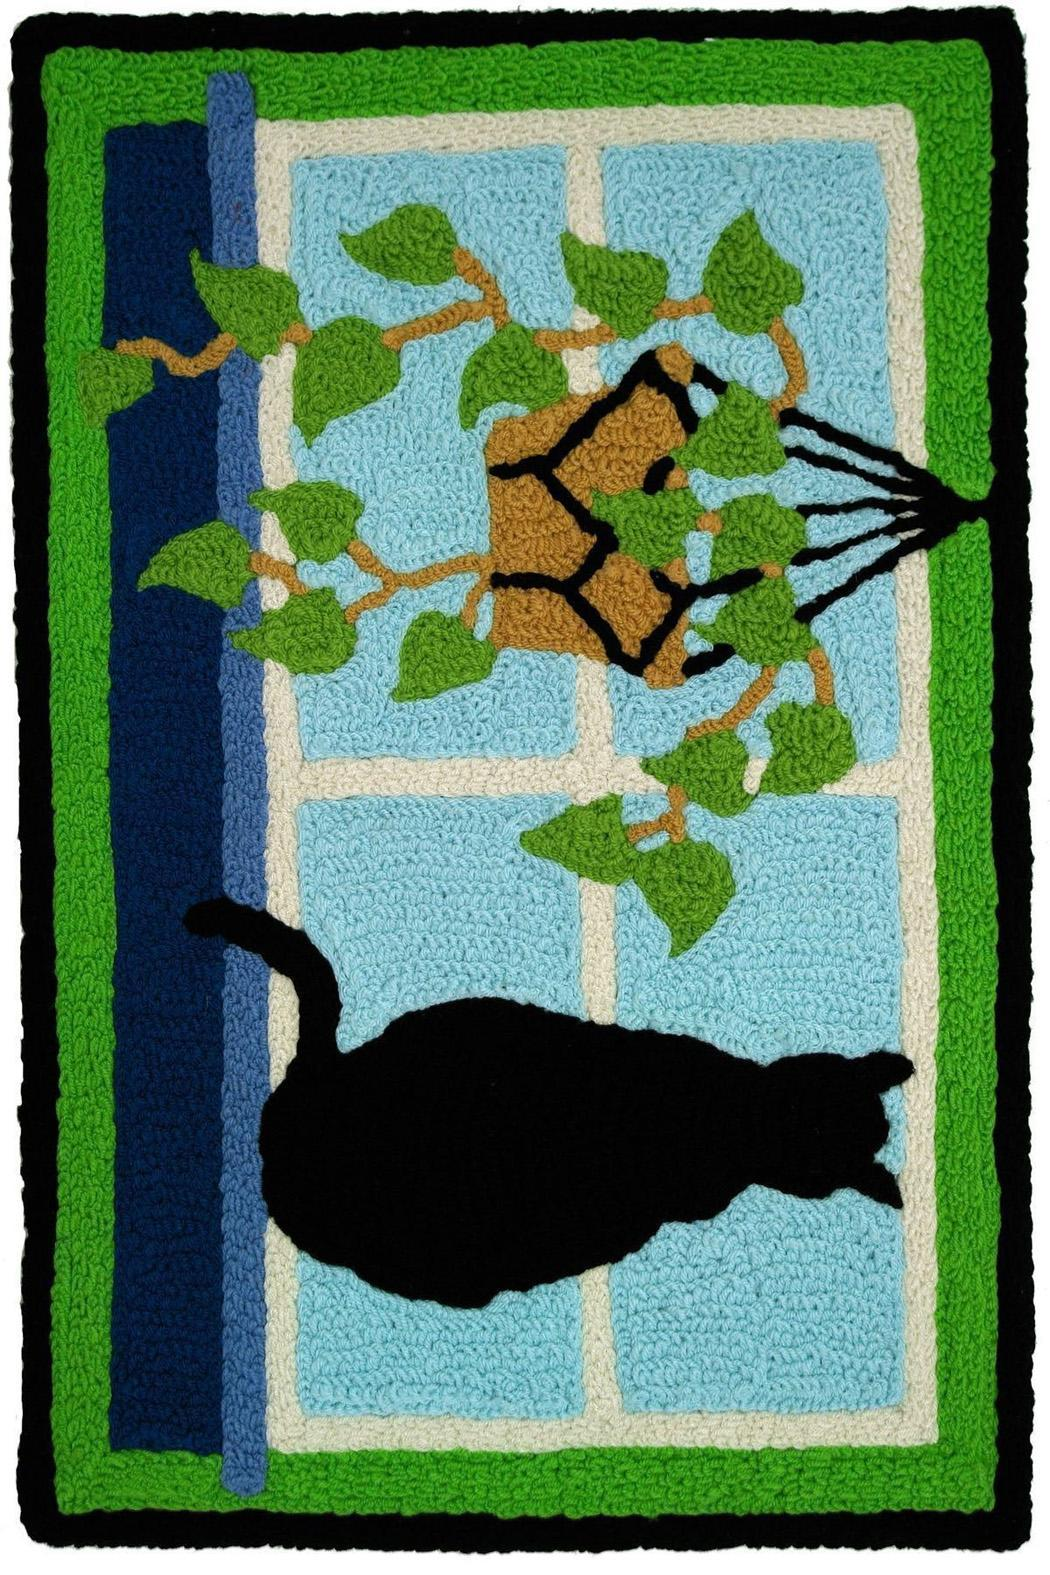 Jelly Bean Rugs Indoor Outdoor Rug From Wisconsin By Fresh